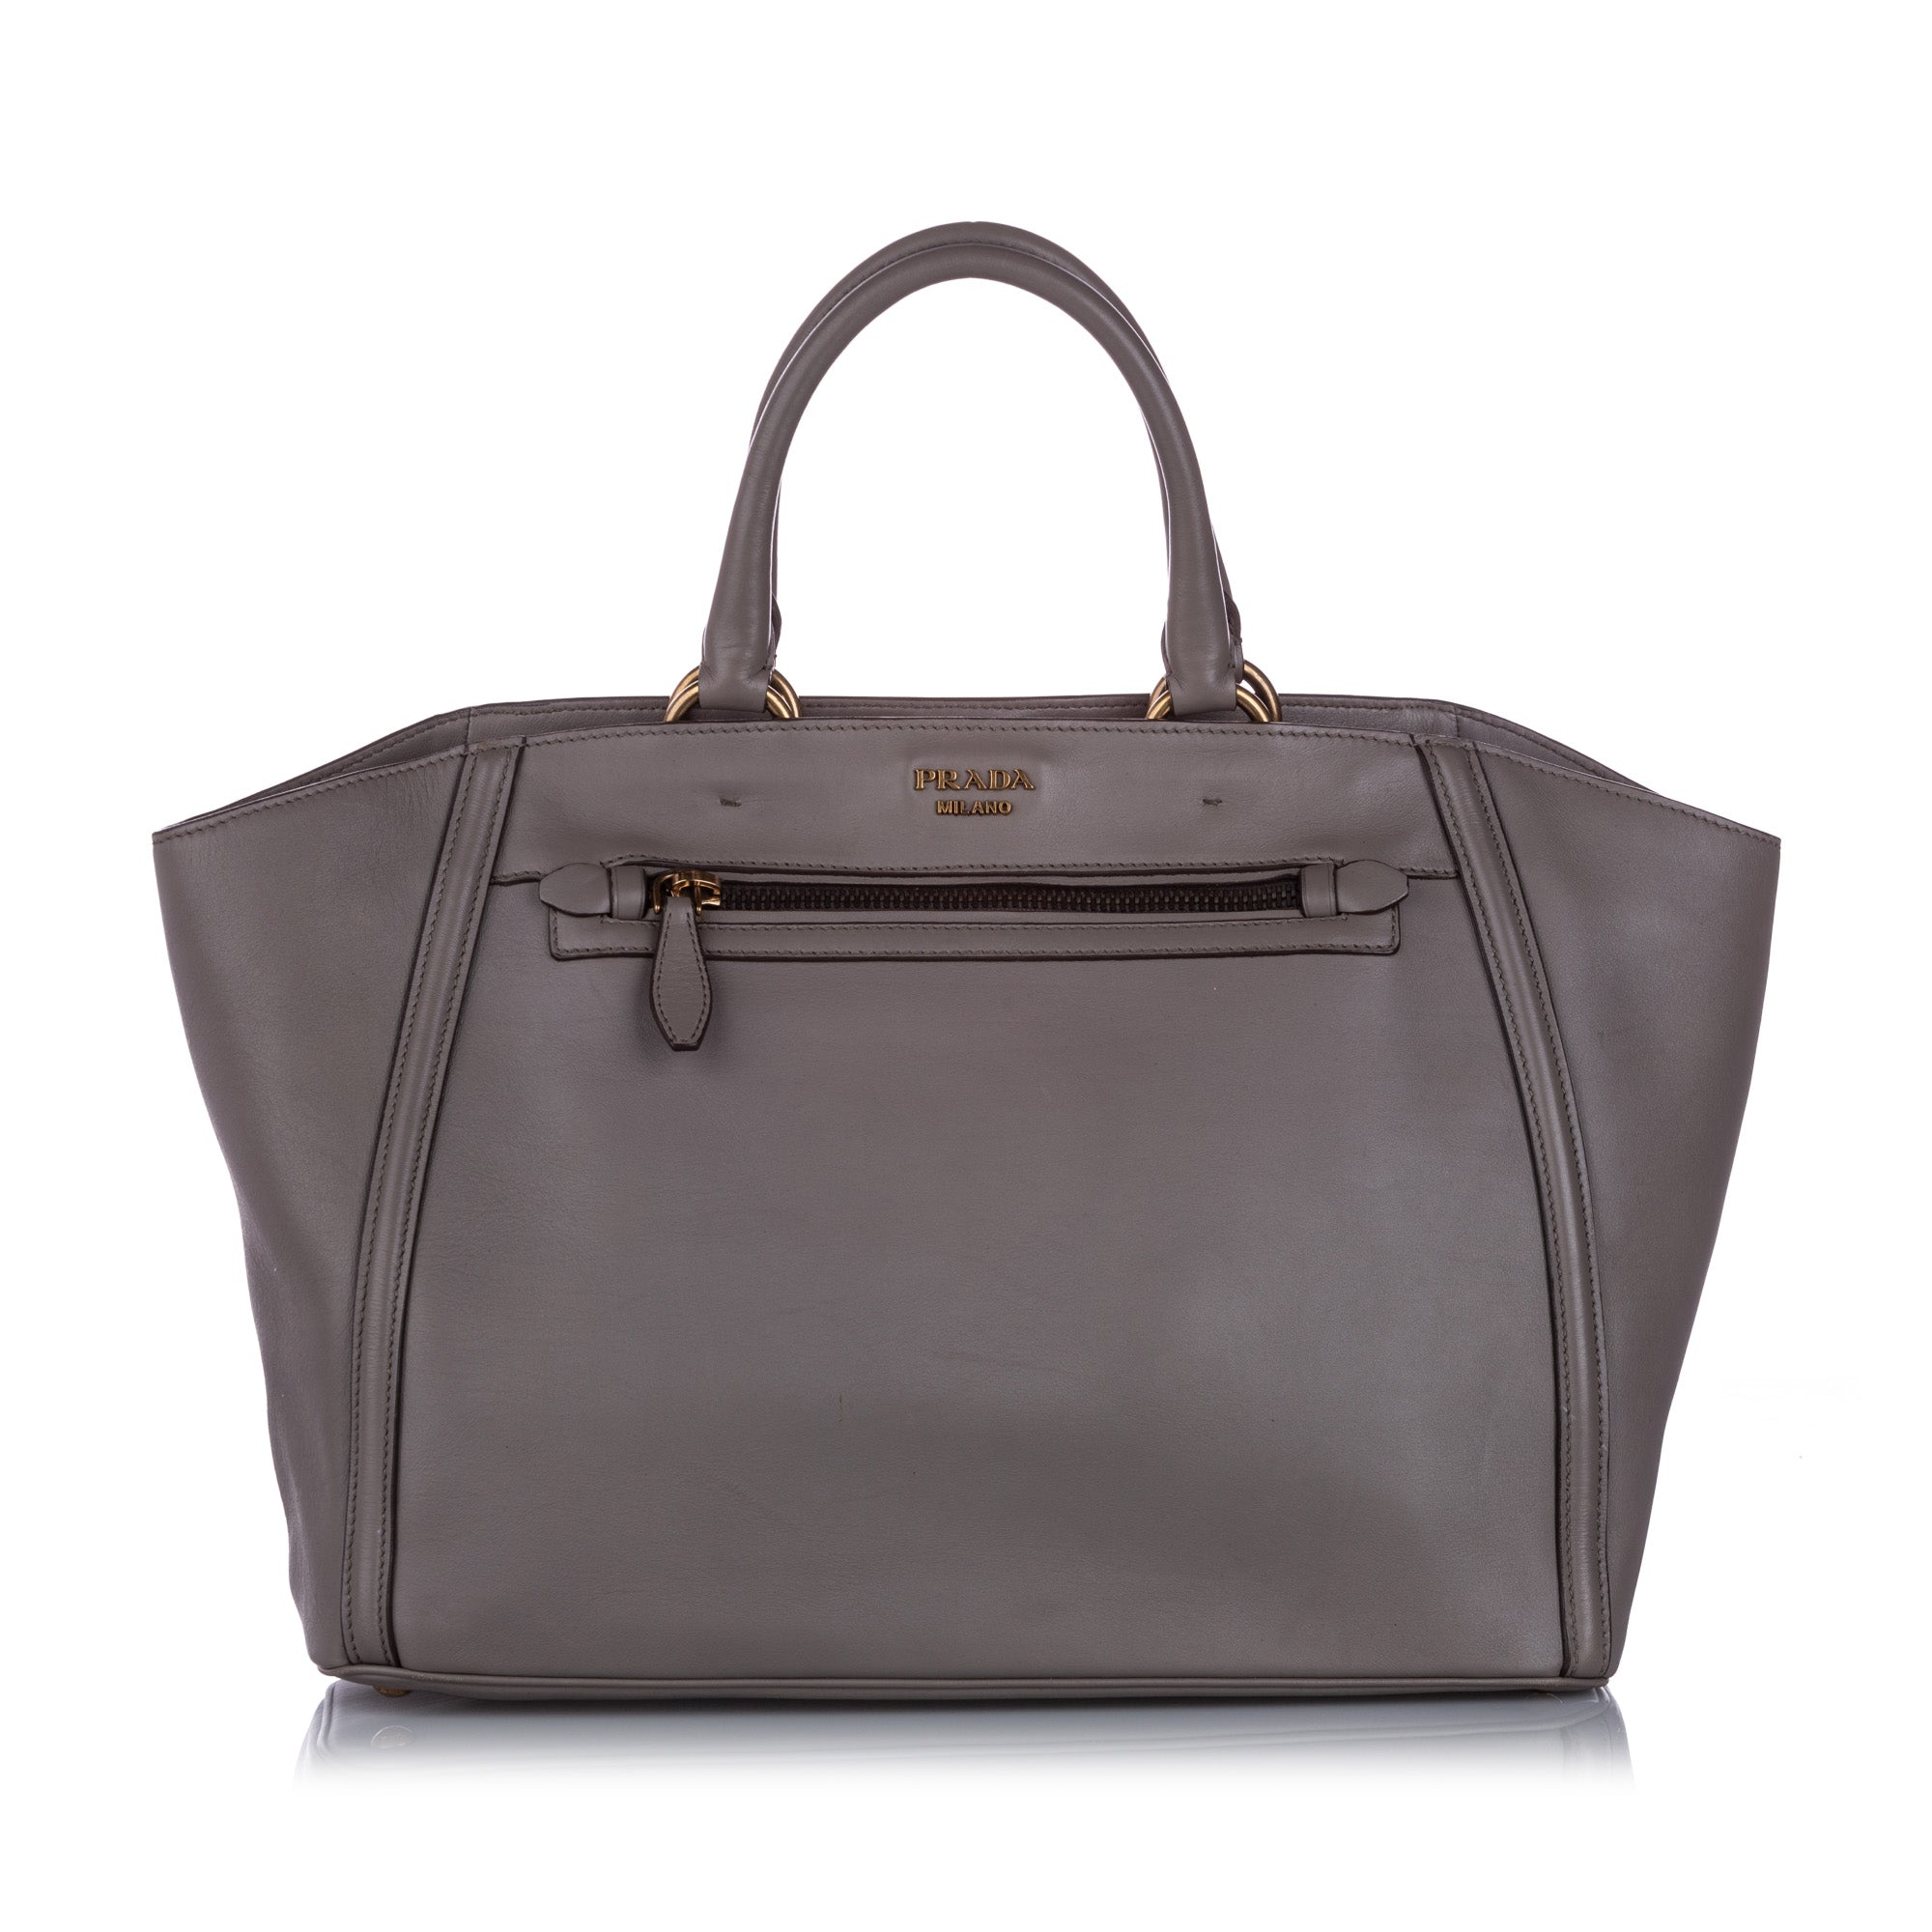 Prada Leather Handbag - Olive Street